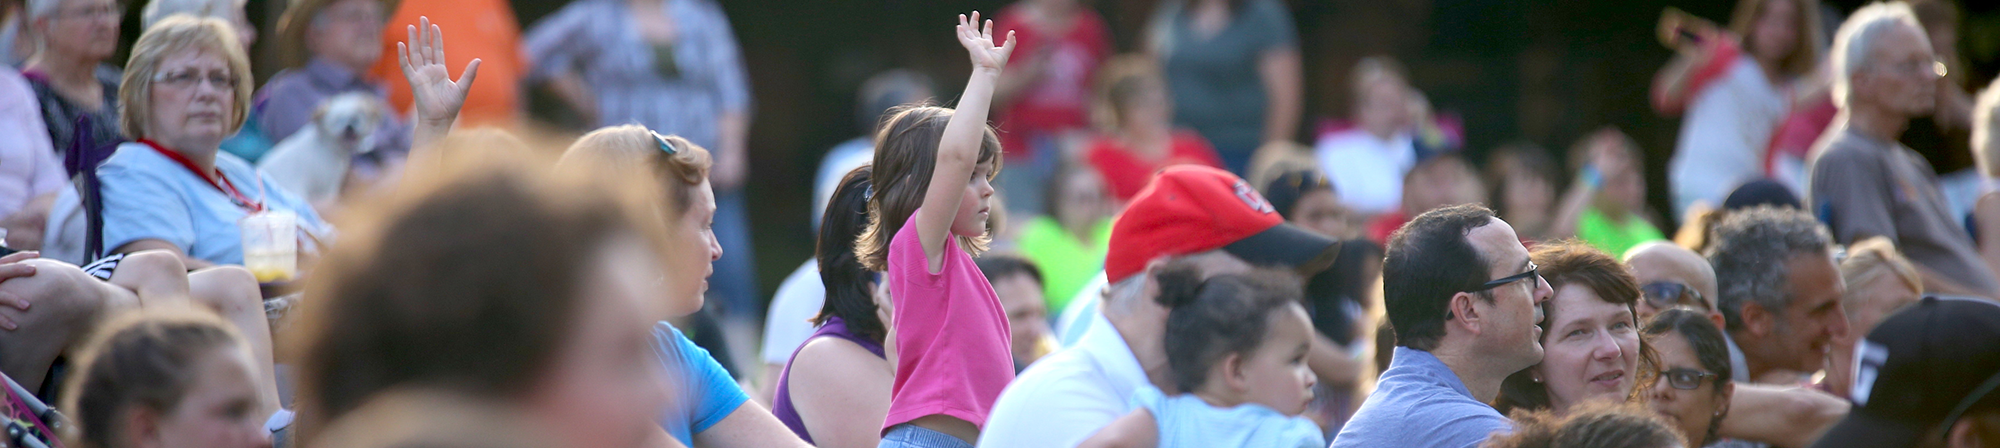 small girl raises hand in the middle of a crowd seated on the lawn